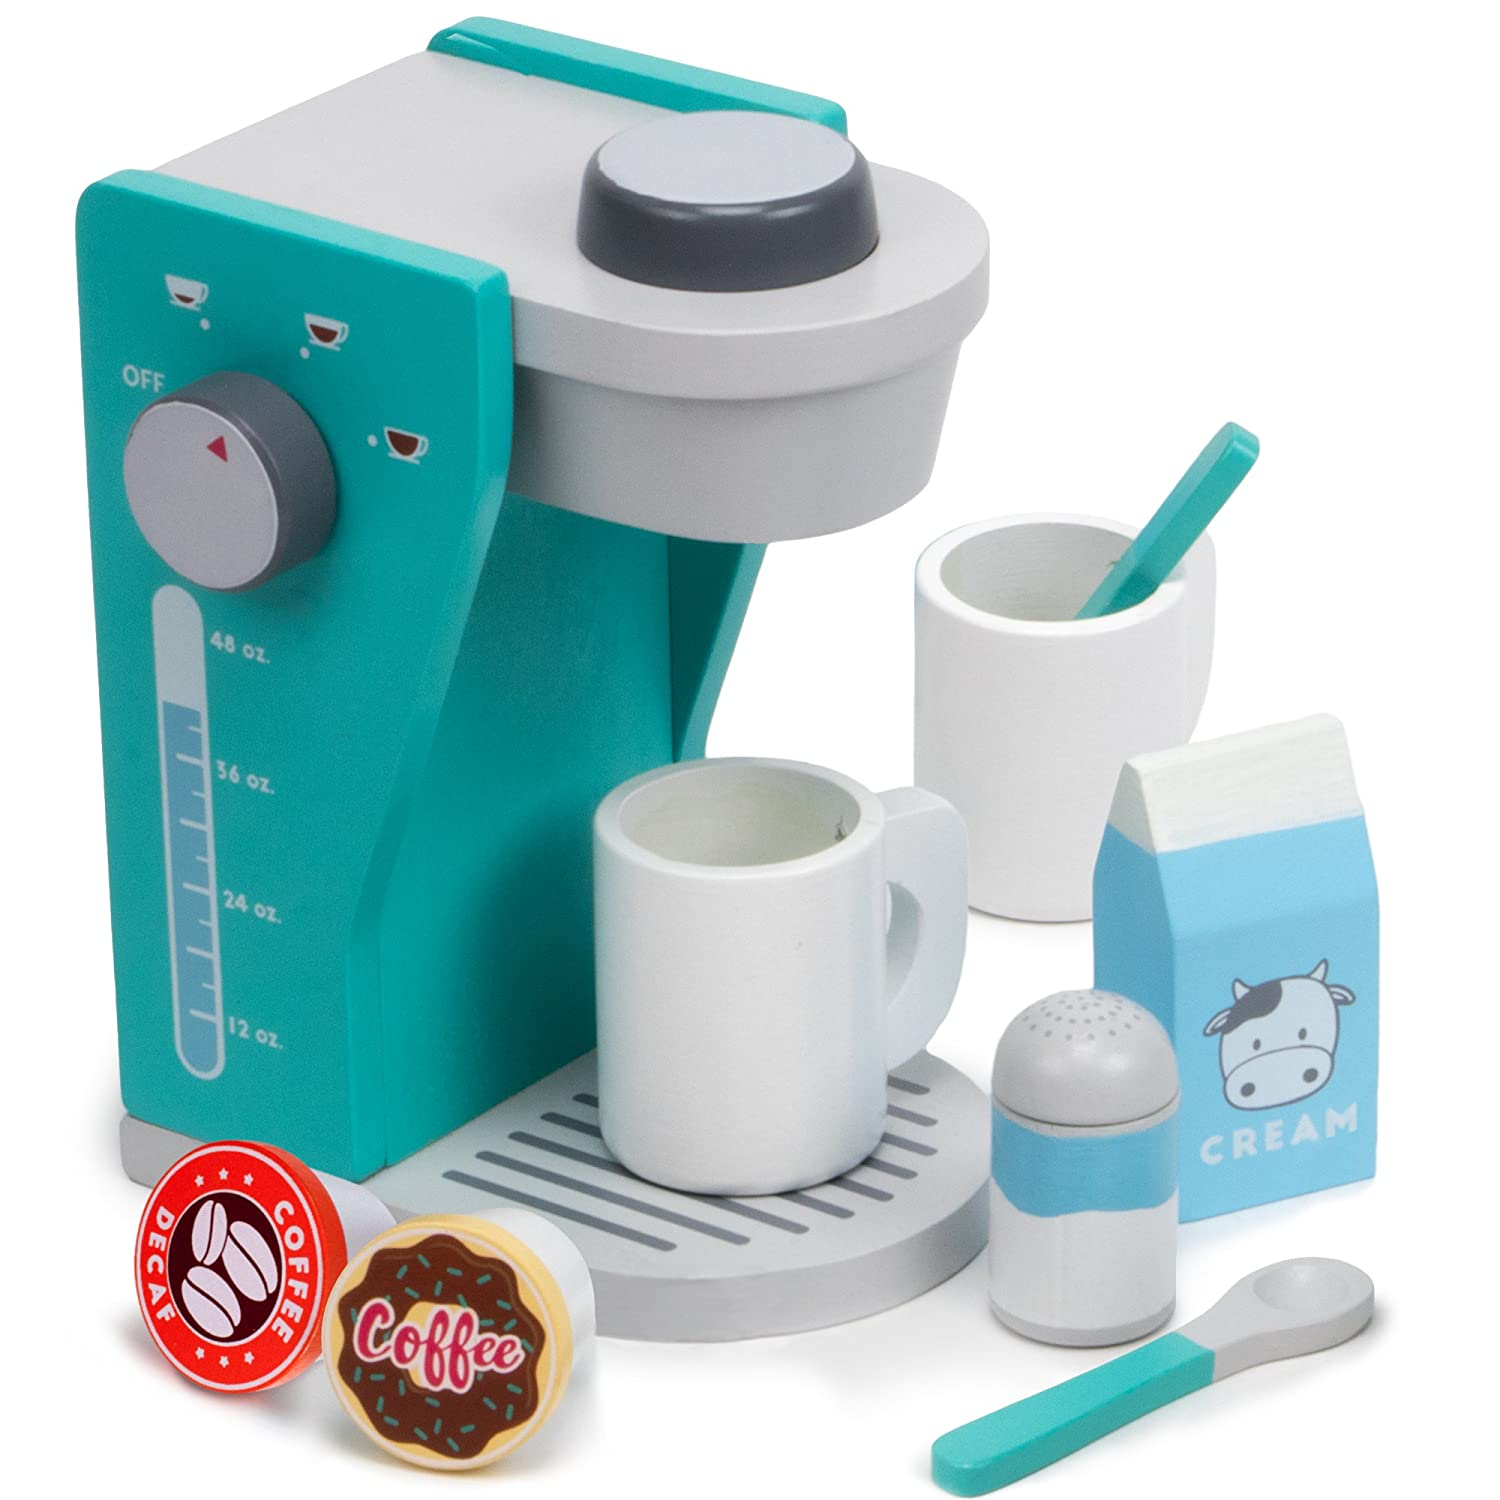 Amazon.com: Rise & Shine Pod Capsule Coffee Maker Playset, with 2 ...